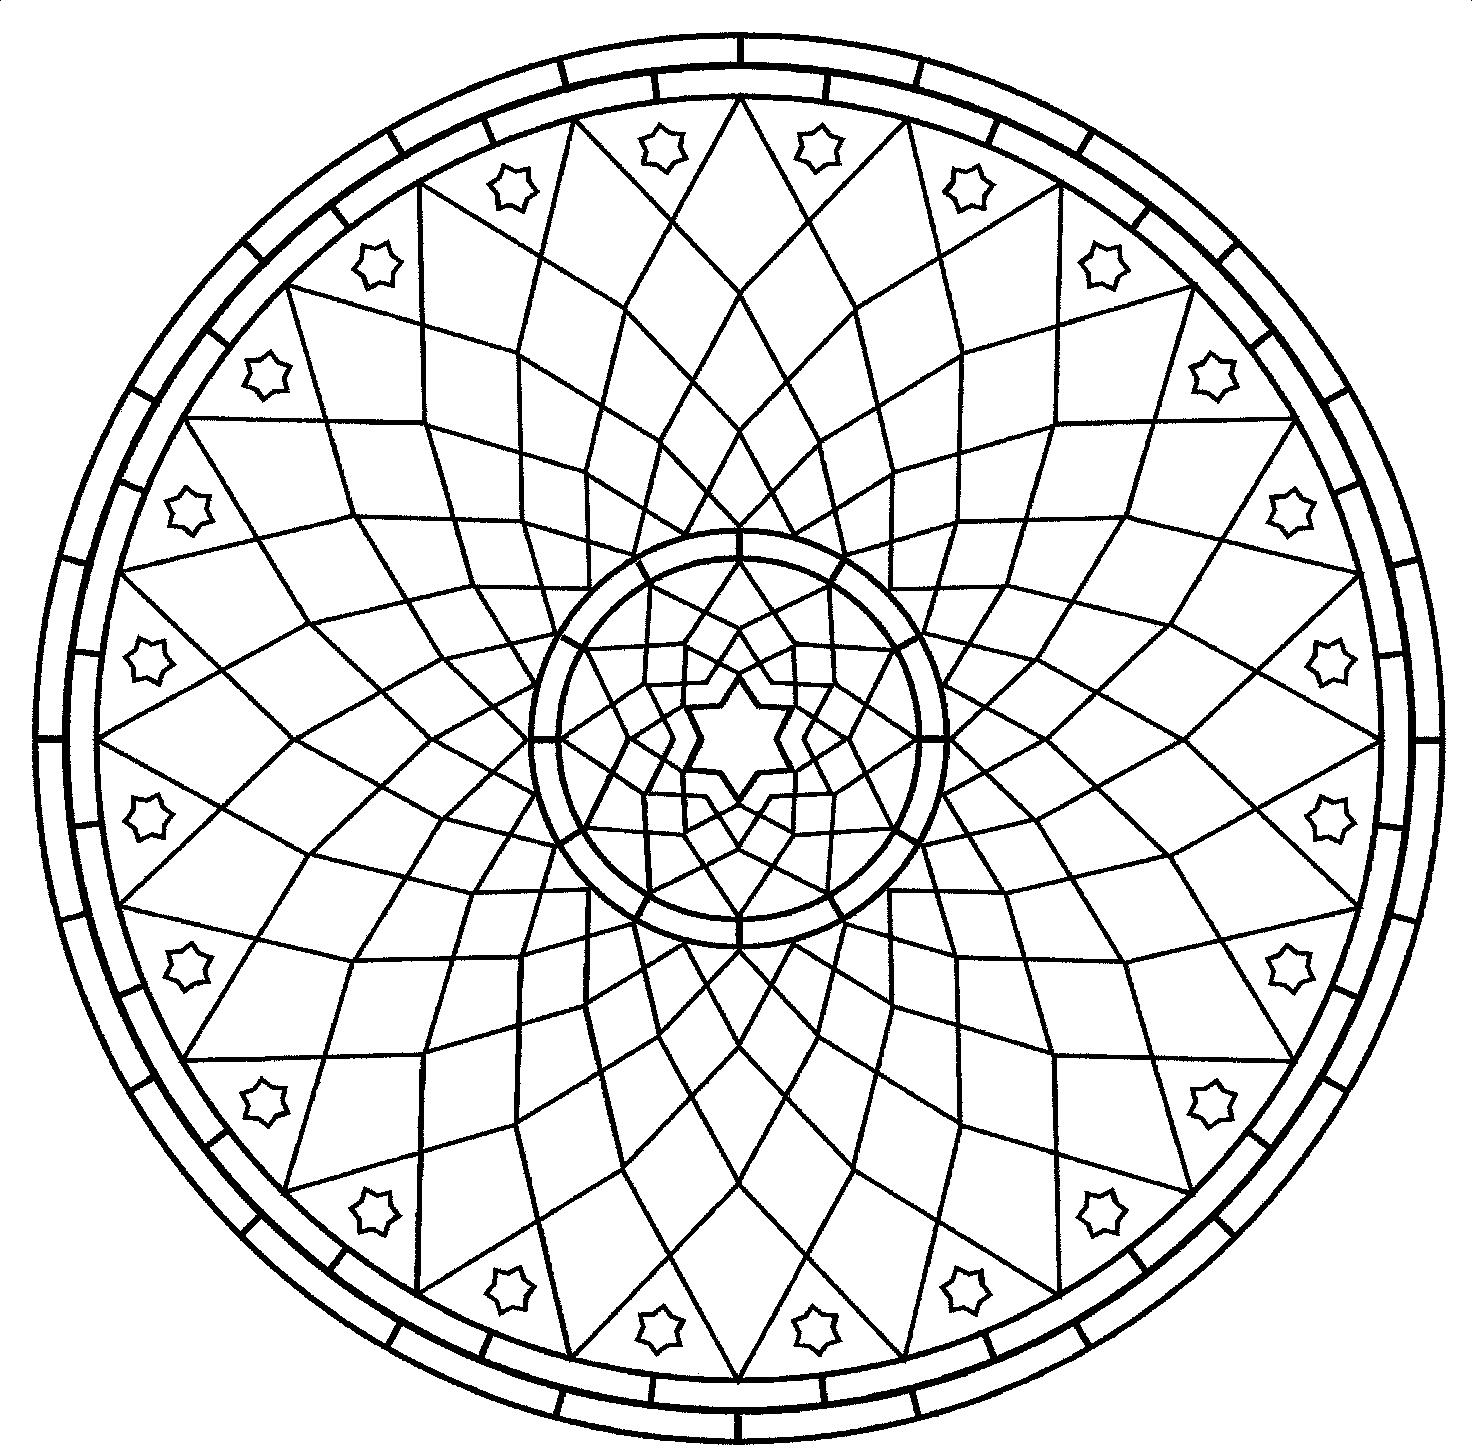 printable mandala coloring pages for adults - mandala coloring pages free printable pictures coloring